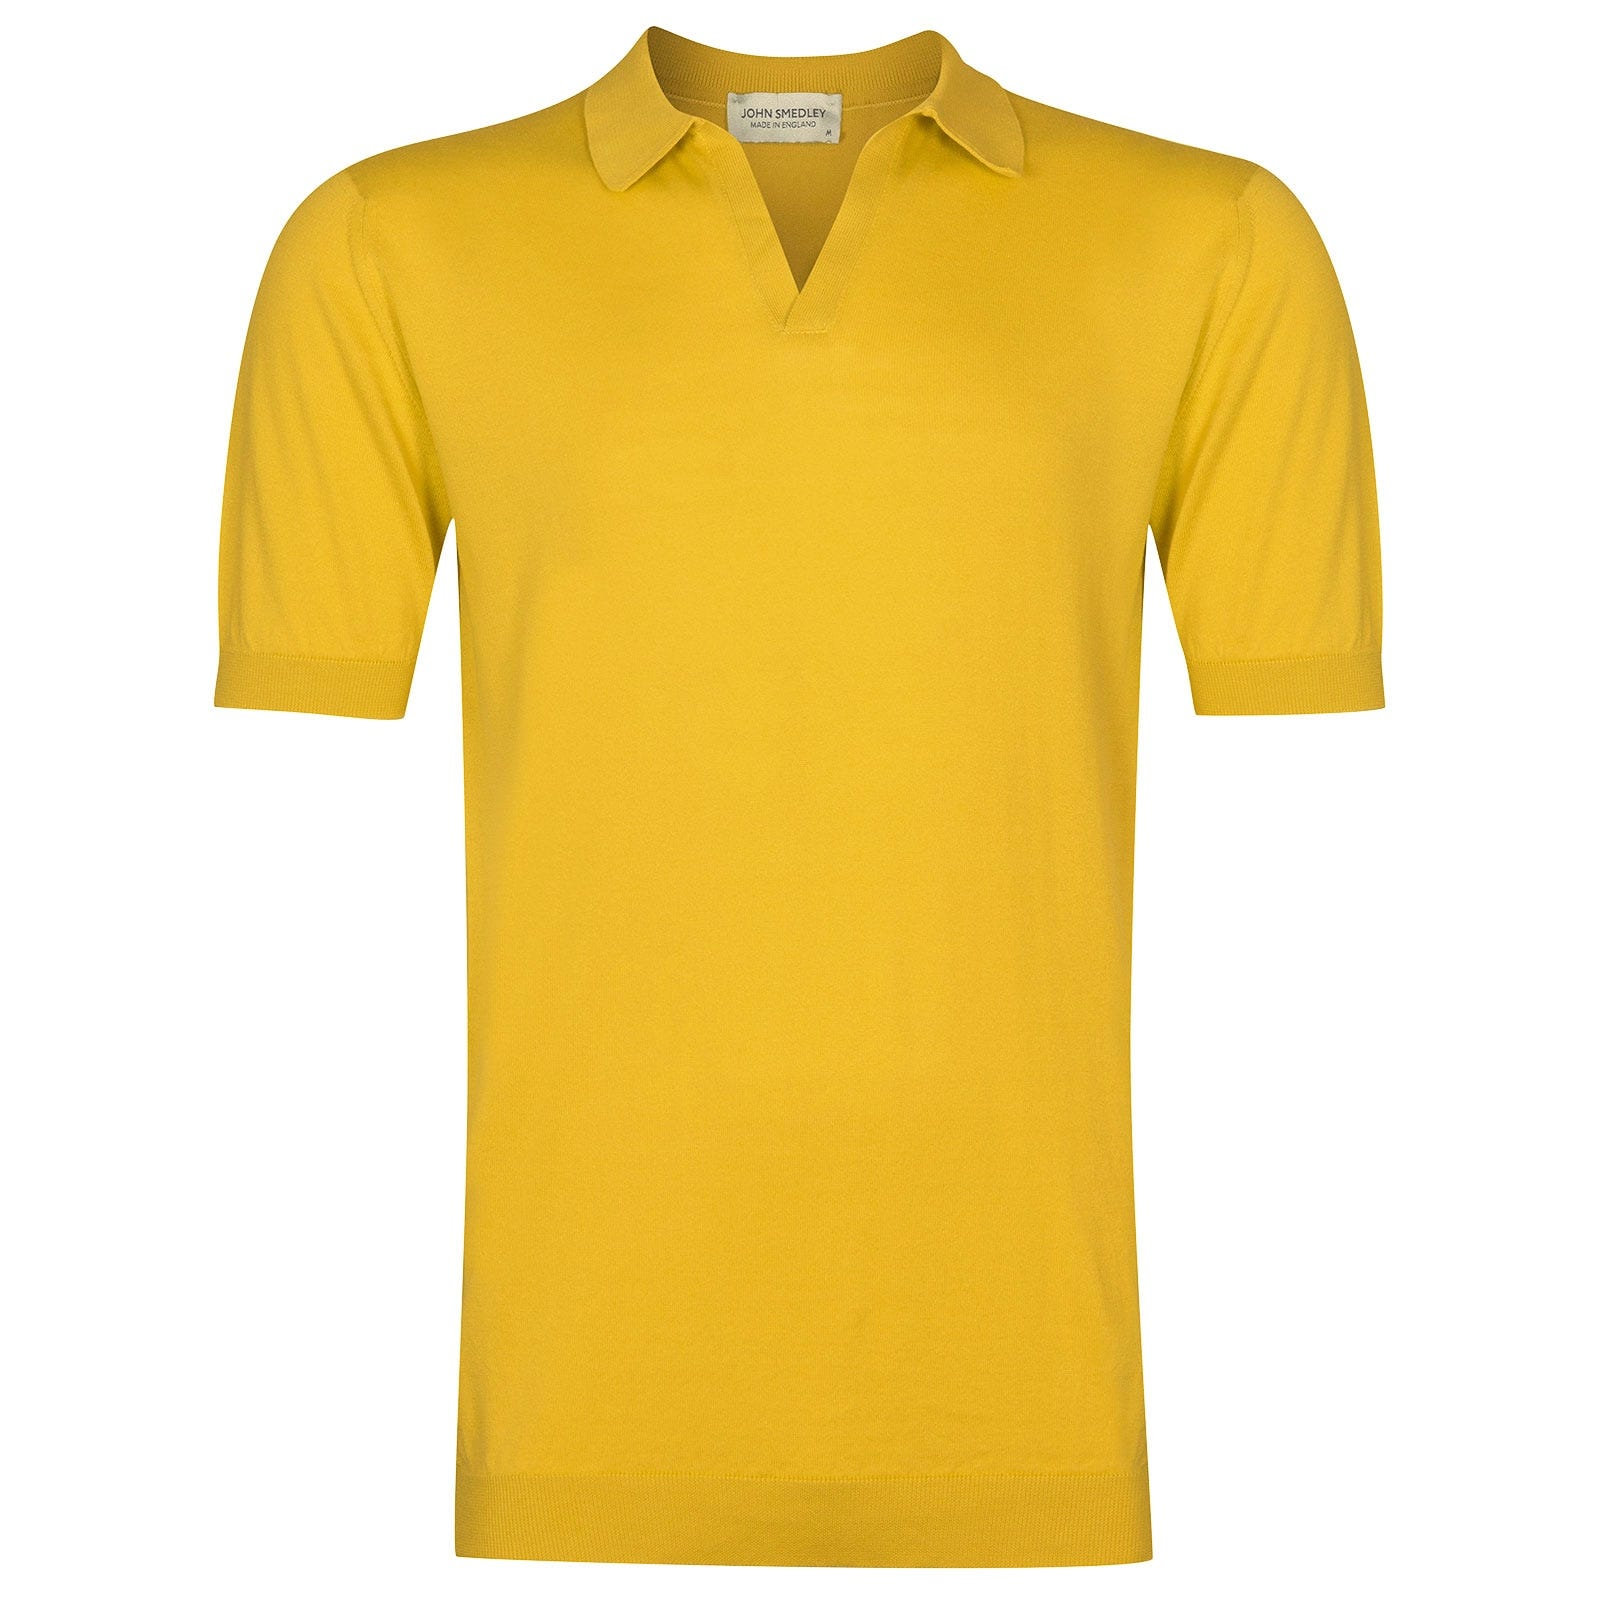 John Smedley Noah Sea Island Cotton Shirt in Tailors Yellow-S